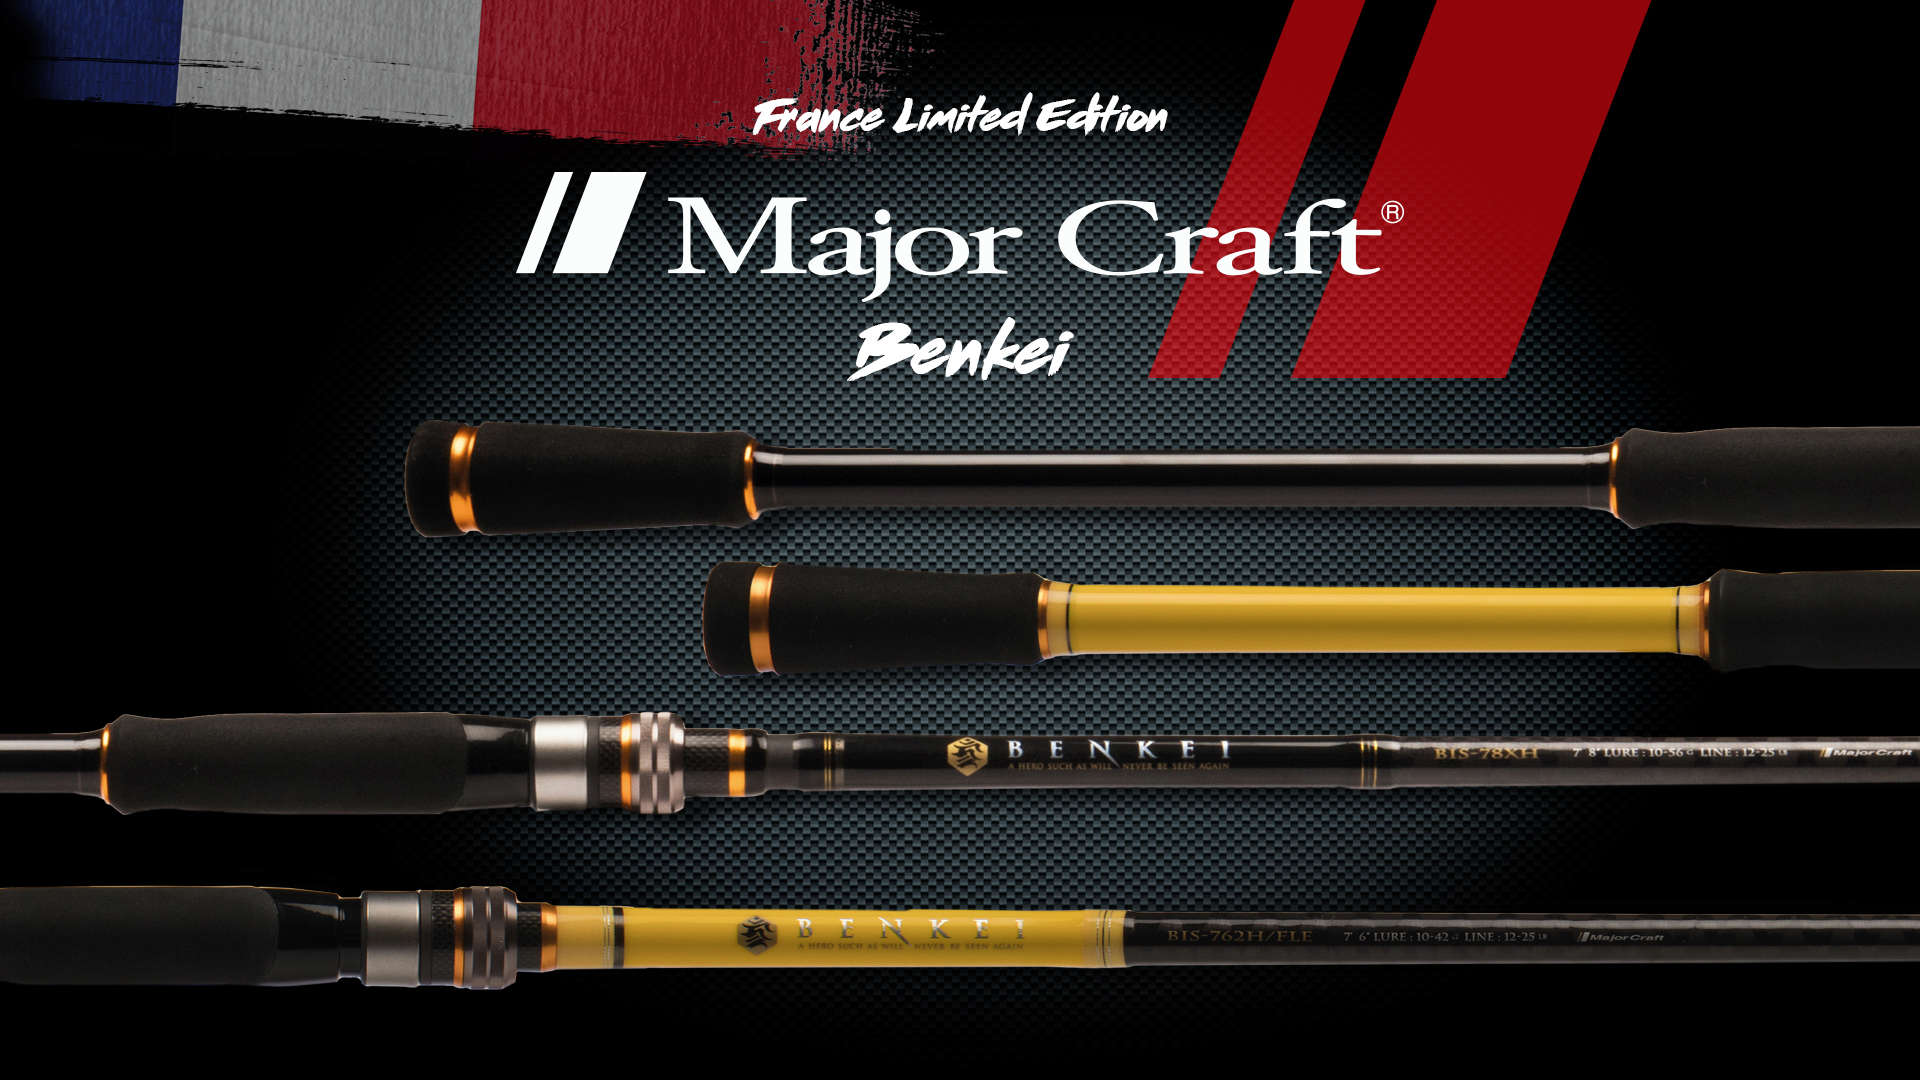 Major Craft Benkei 722MH France Limited Edition Majorc10